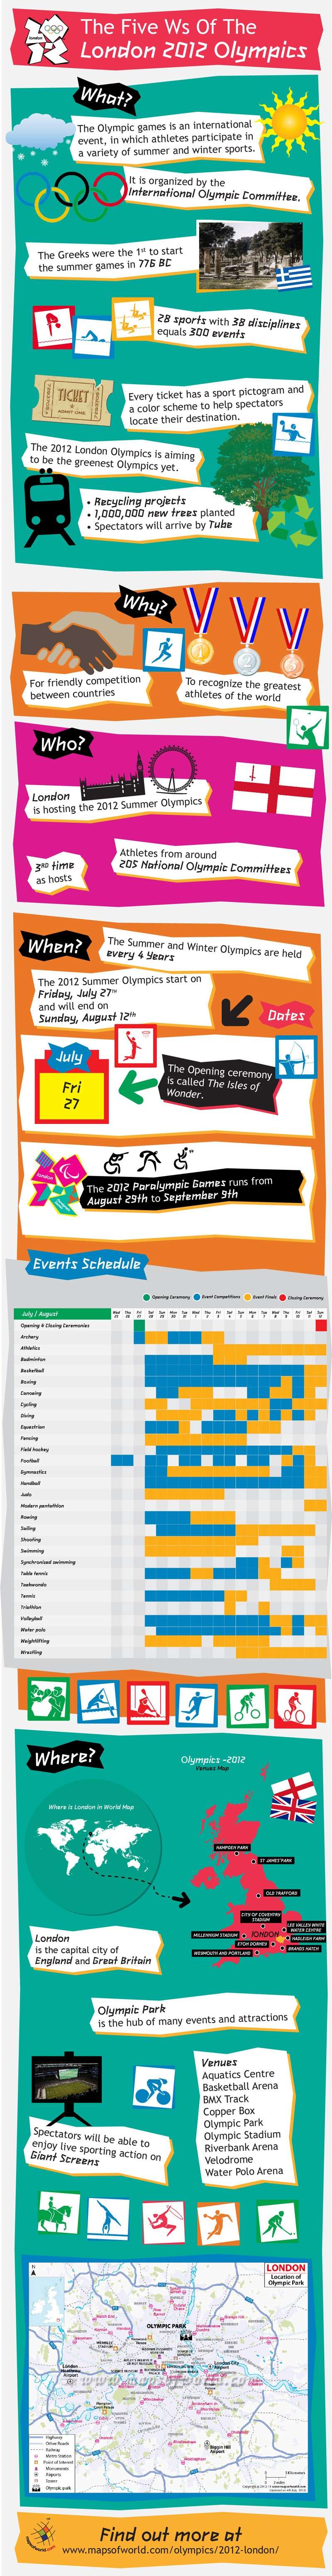 London 2012 Olympics Live Event Complete Schedule List [Infographic]